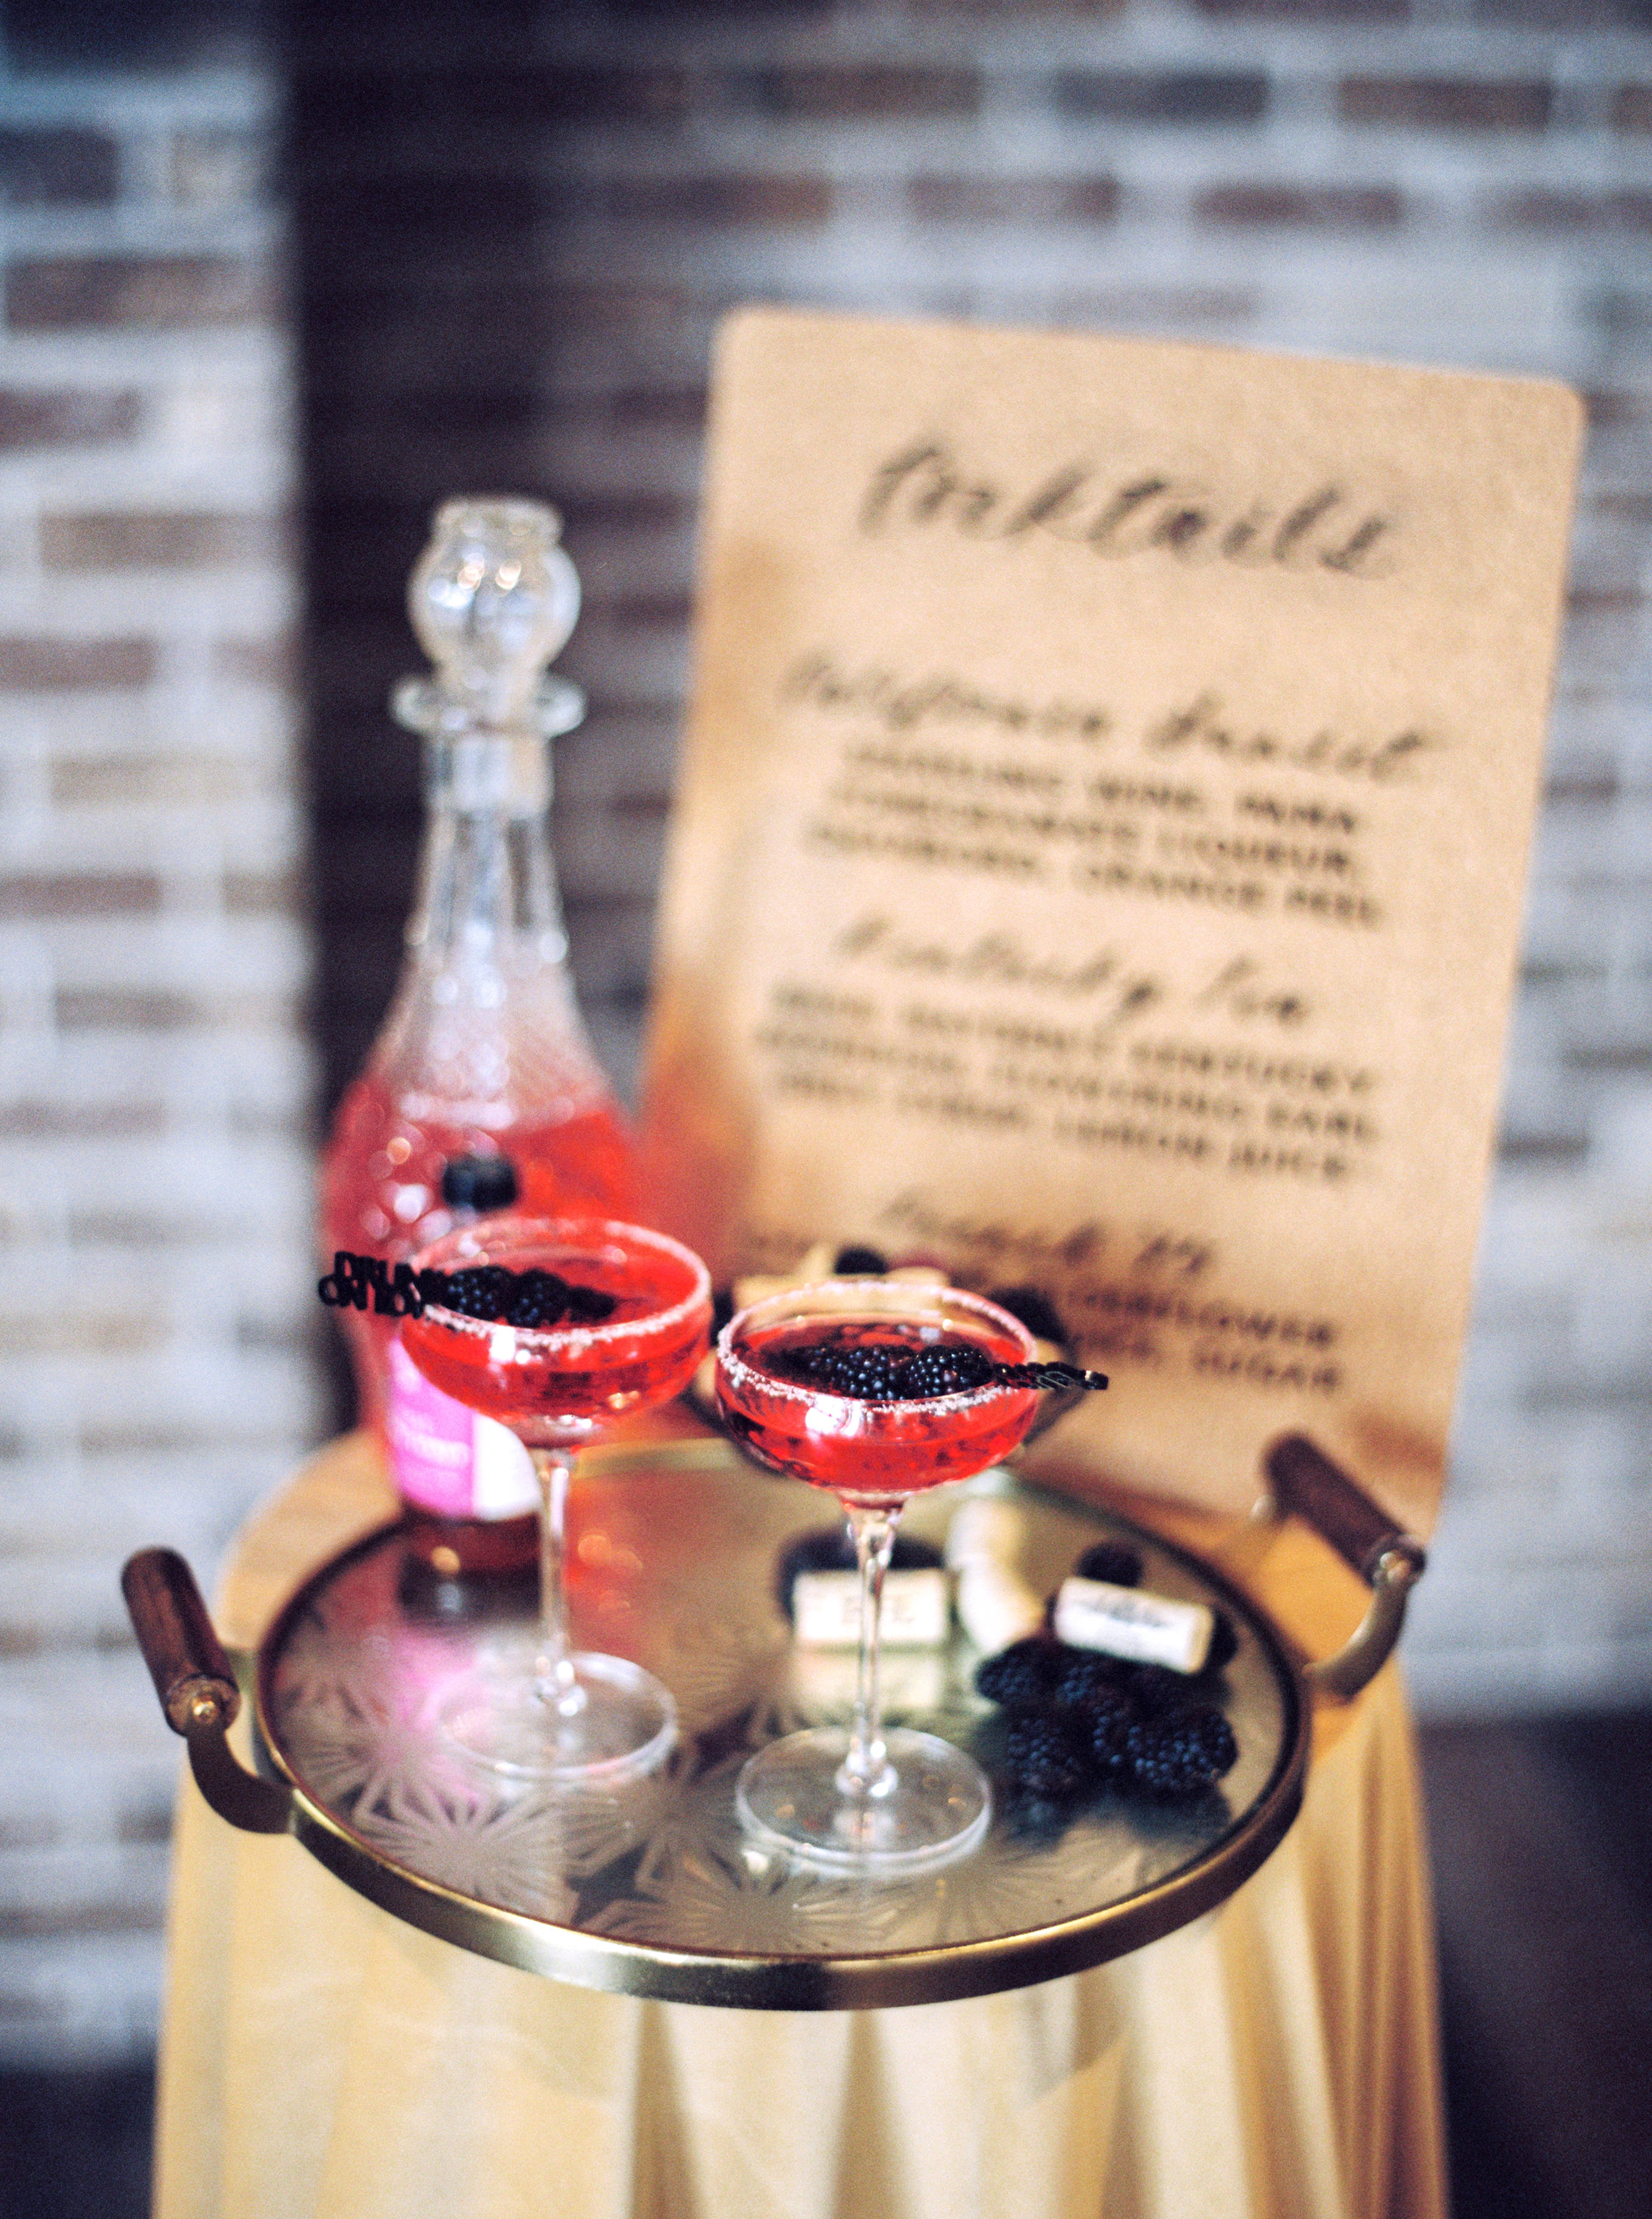 boho-inspired-wedding-at-casa-bella-in-sunol-california-9.jpg